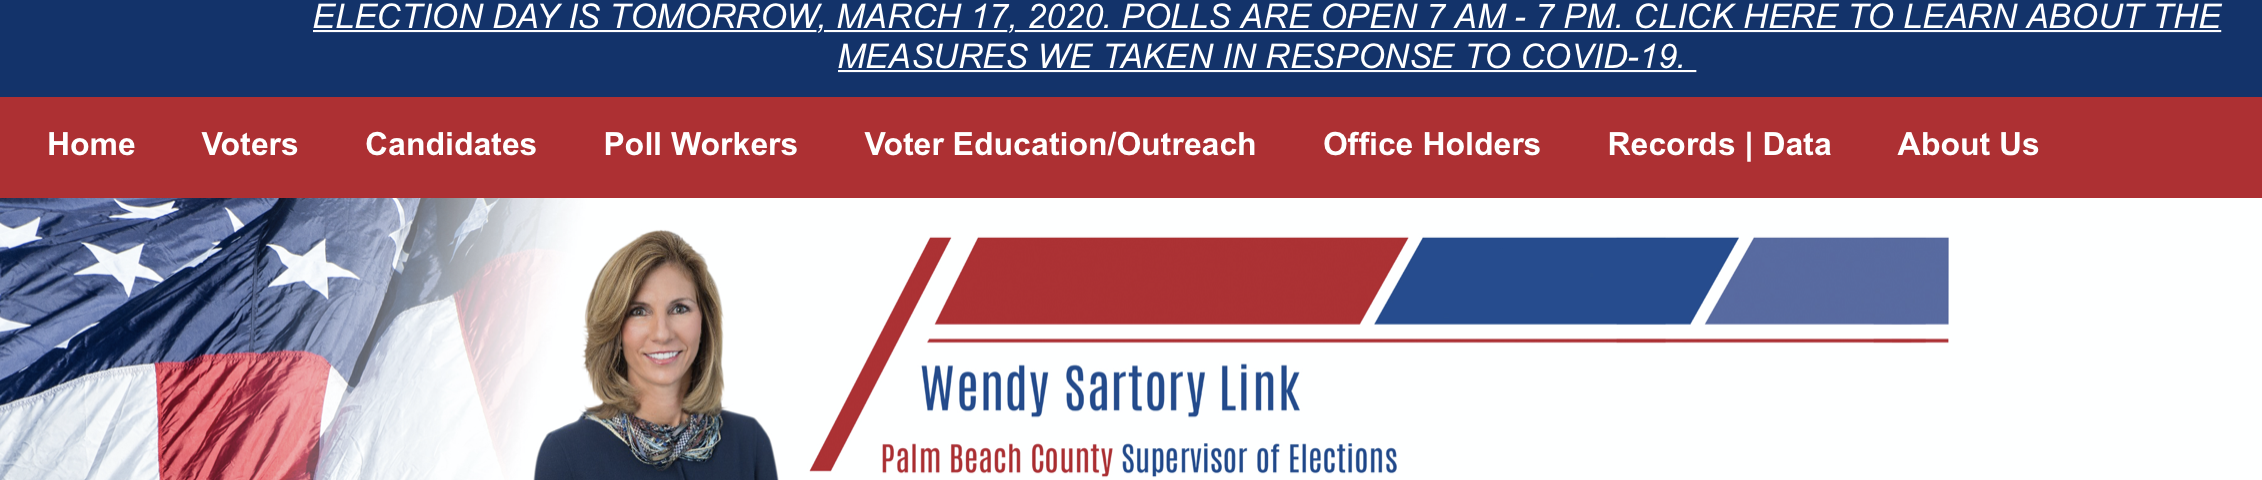 Election Day palm beach county